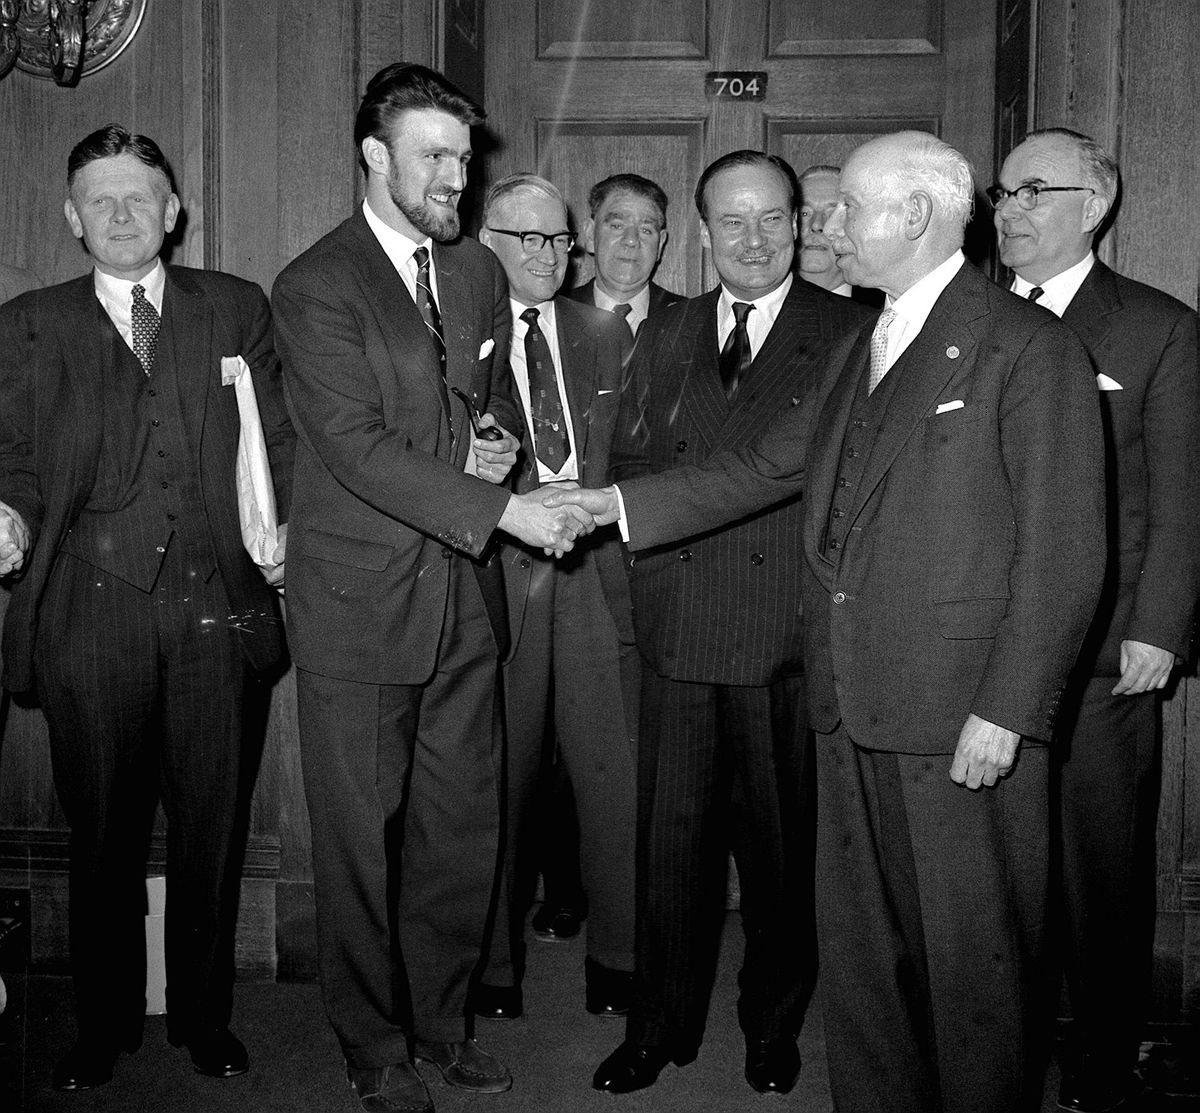 Player's leader Jimmy Hill, left, with beard, changed the face of of football forever in talks over the winter of 1960 to 1961. He is pictured shaking shaking hands with Joe Richards, President of the Football League, after a meeting which led to a players' strike being called off.